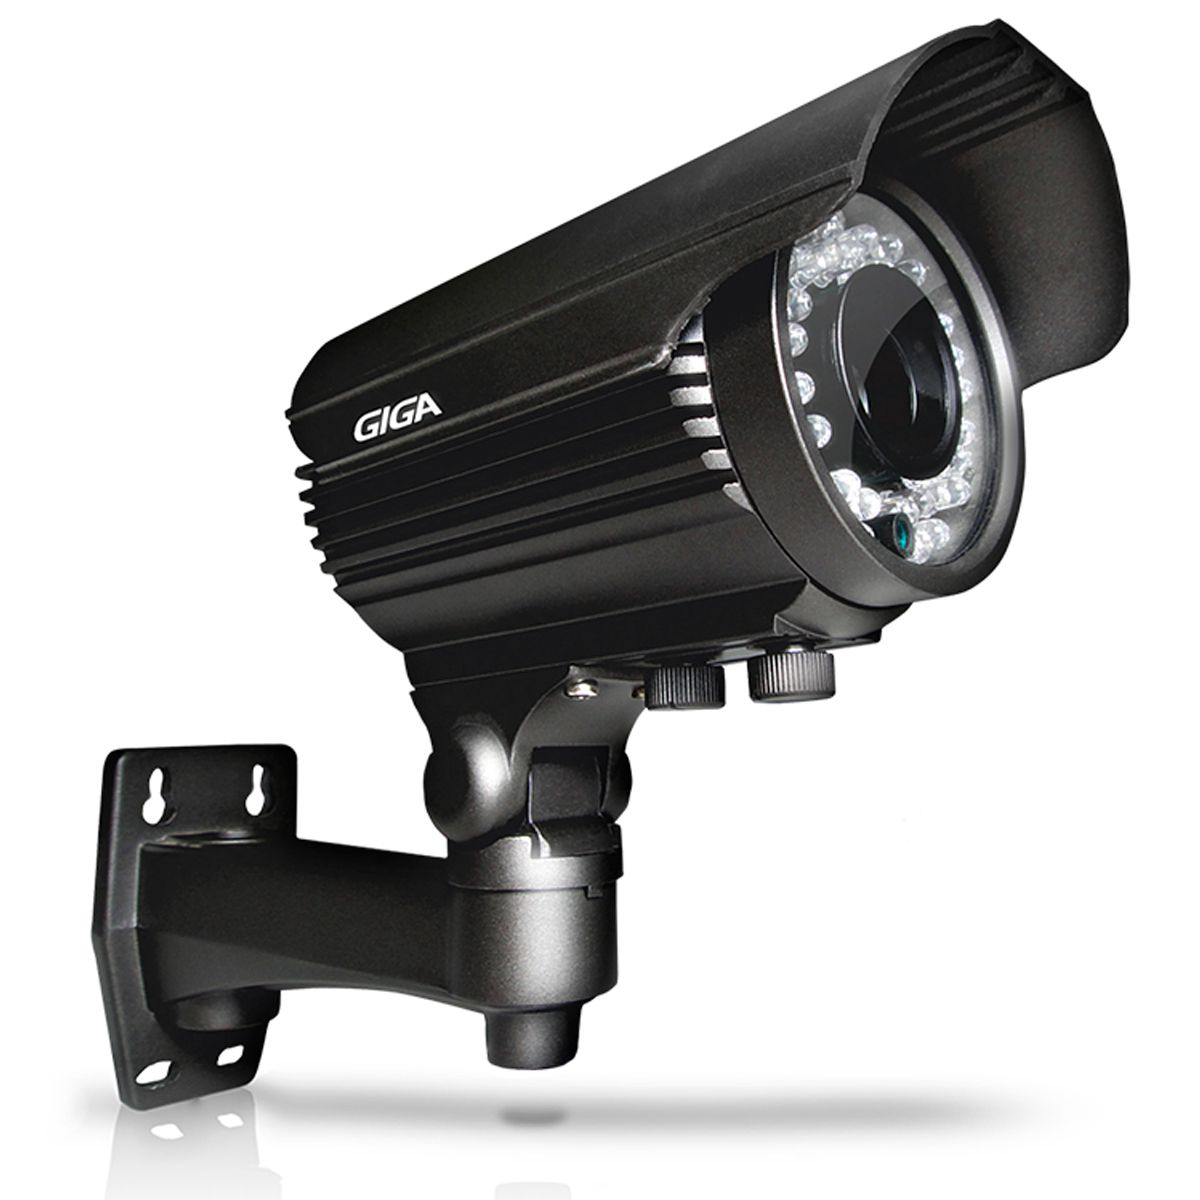 Câmera Full HD Giga Security, GS0276 Orion, 50 Metros Infra, Varifocal, 1080p, 2MP  - Tudo Forte